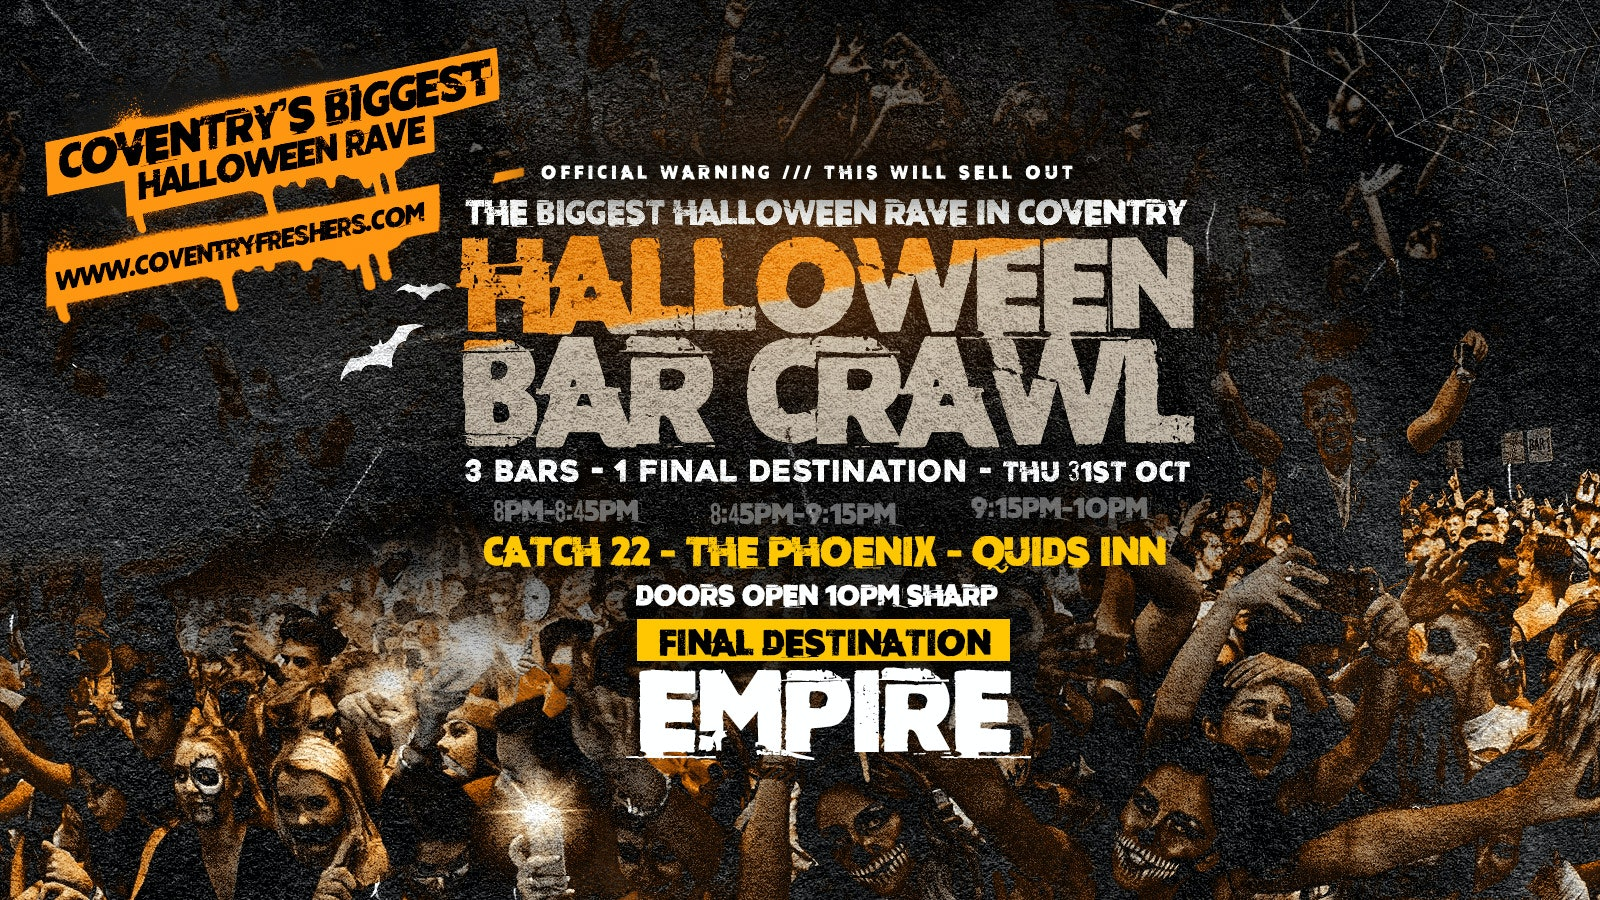 The Halloween Bar Crawl // Coventry Halloween 2019